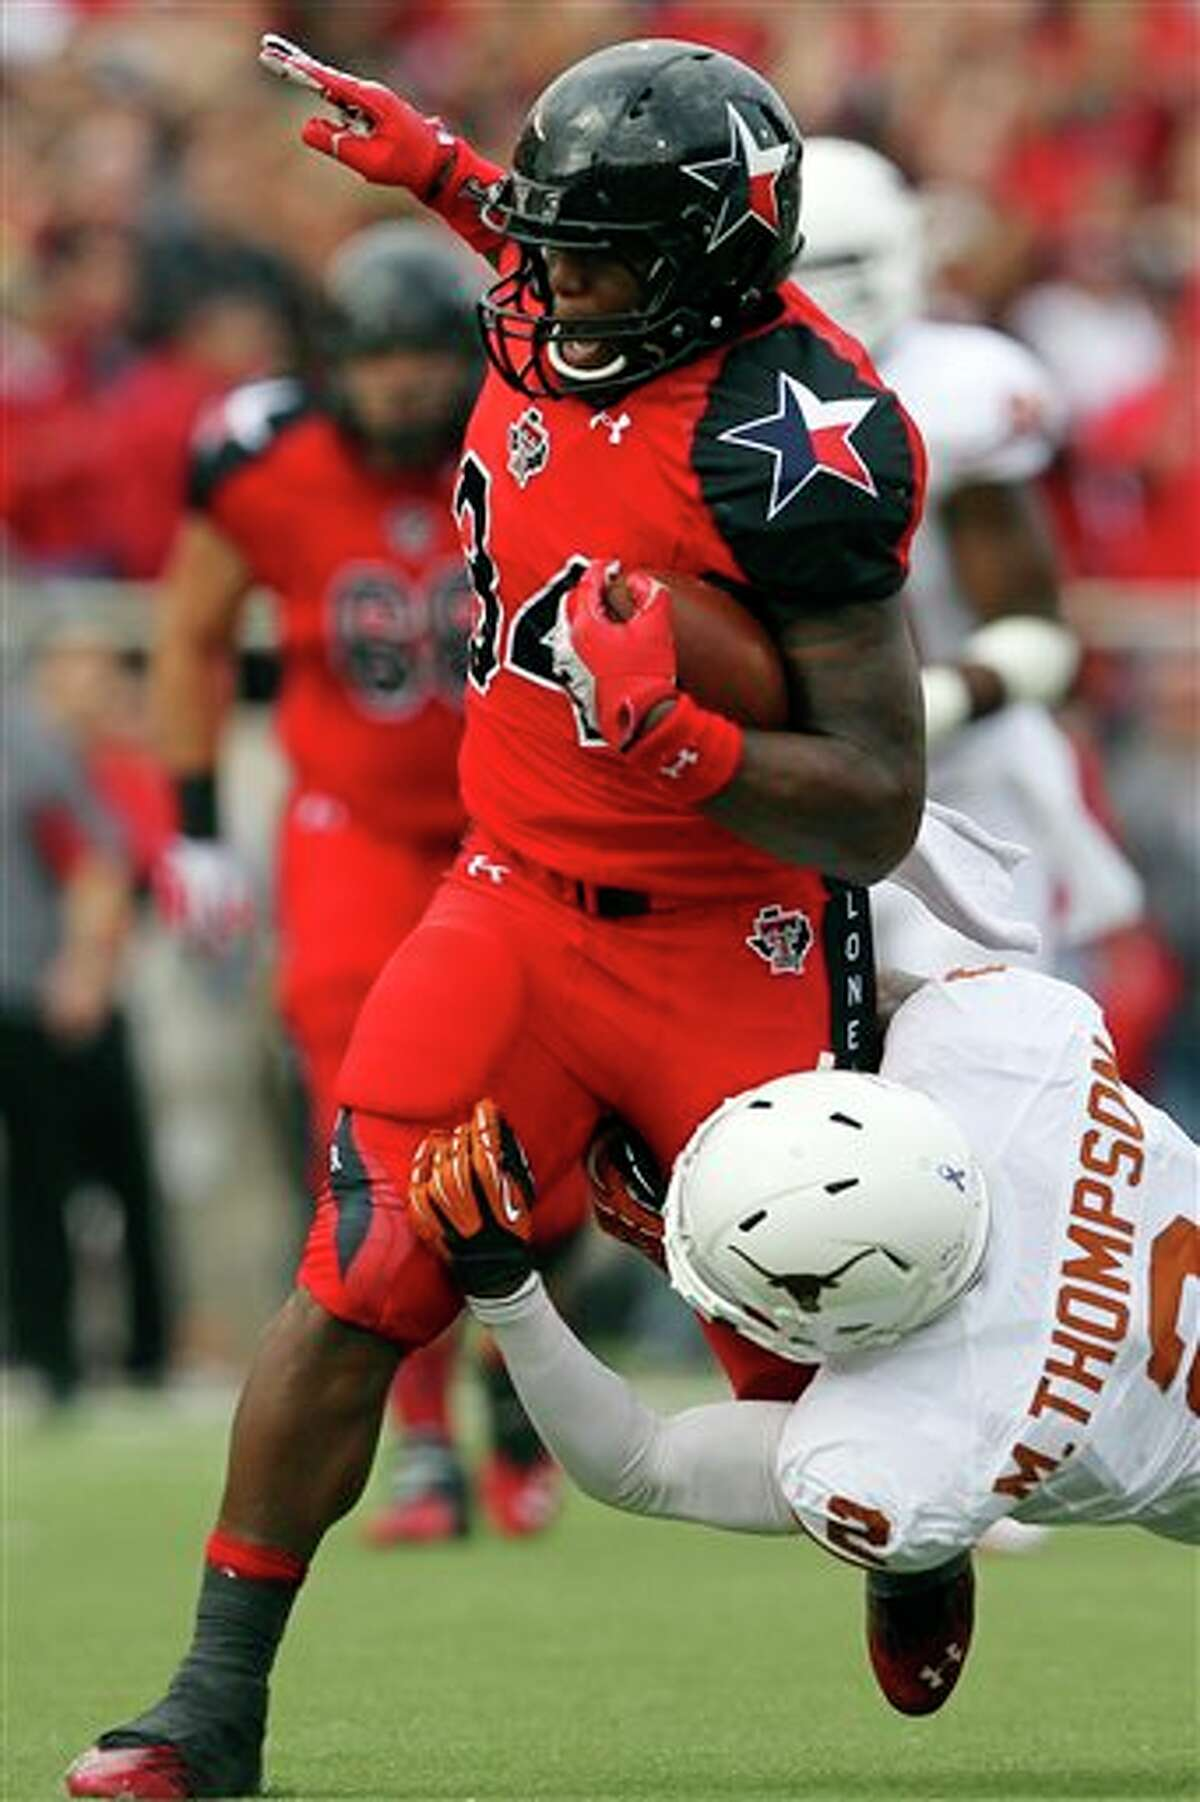 Texas Tech's Kenny Williams is hit by Texas' Mykkele Thompson during their NCAA college football game, Saturday, Nov. 3, 2012, in Lubbock, Texas. (AP Photo/Lubbock Avalanche-Journal,Stephen Spillman) LOCAL TV OUT